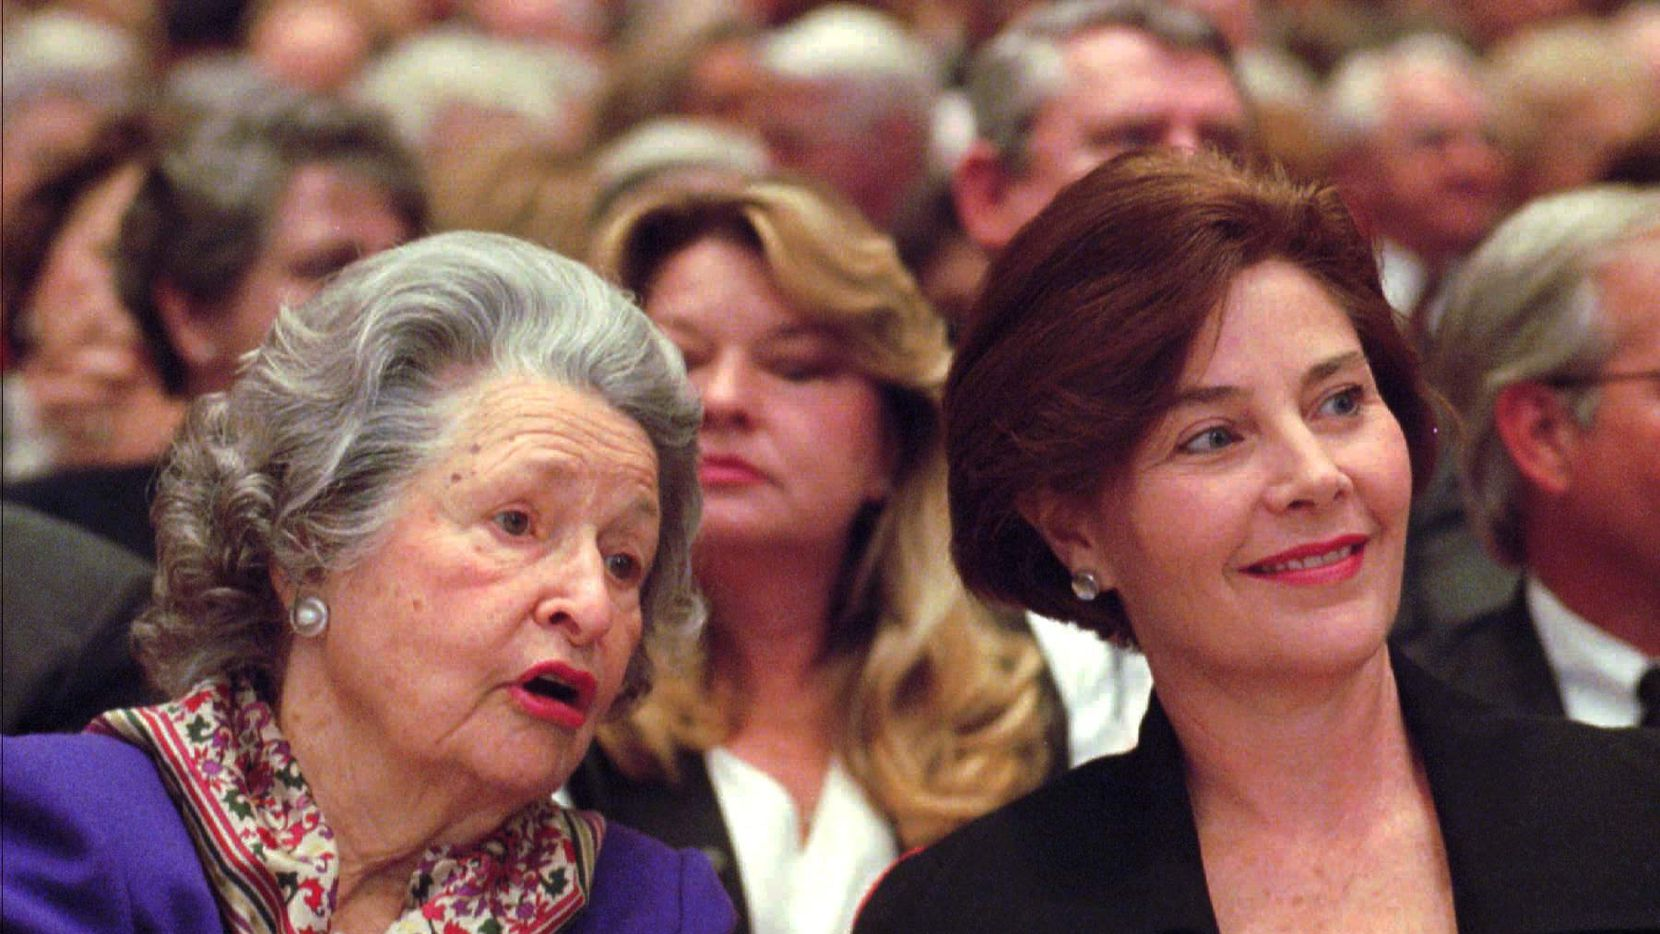 Former U.S. first lady Lady Bird Johnson, left, talks with Texas first lady Laura Bush during a speech by former President Gerald Ford Feb. 7, 1997, in Austin, Texas. Ford was speaking at the Lyndon Johnson Library as part of a lecture series.